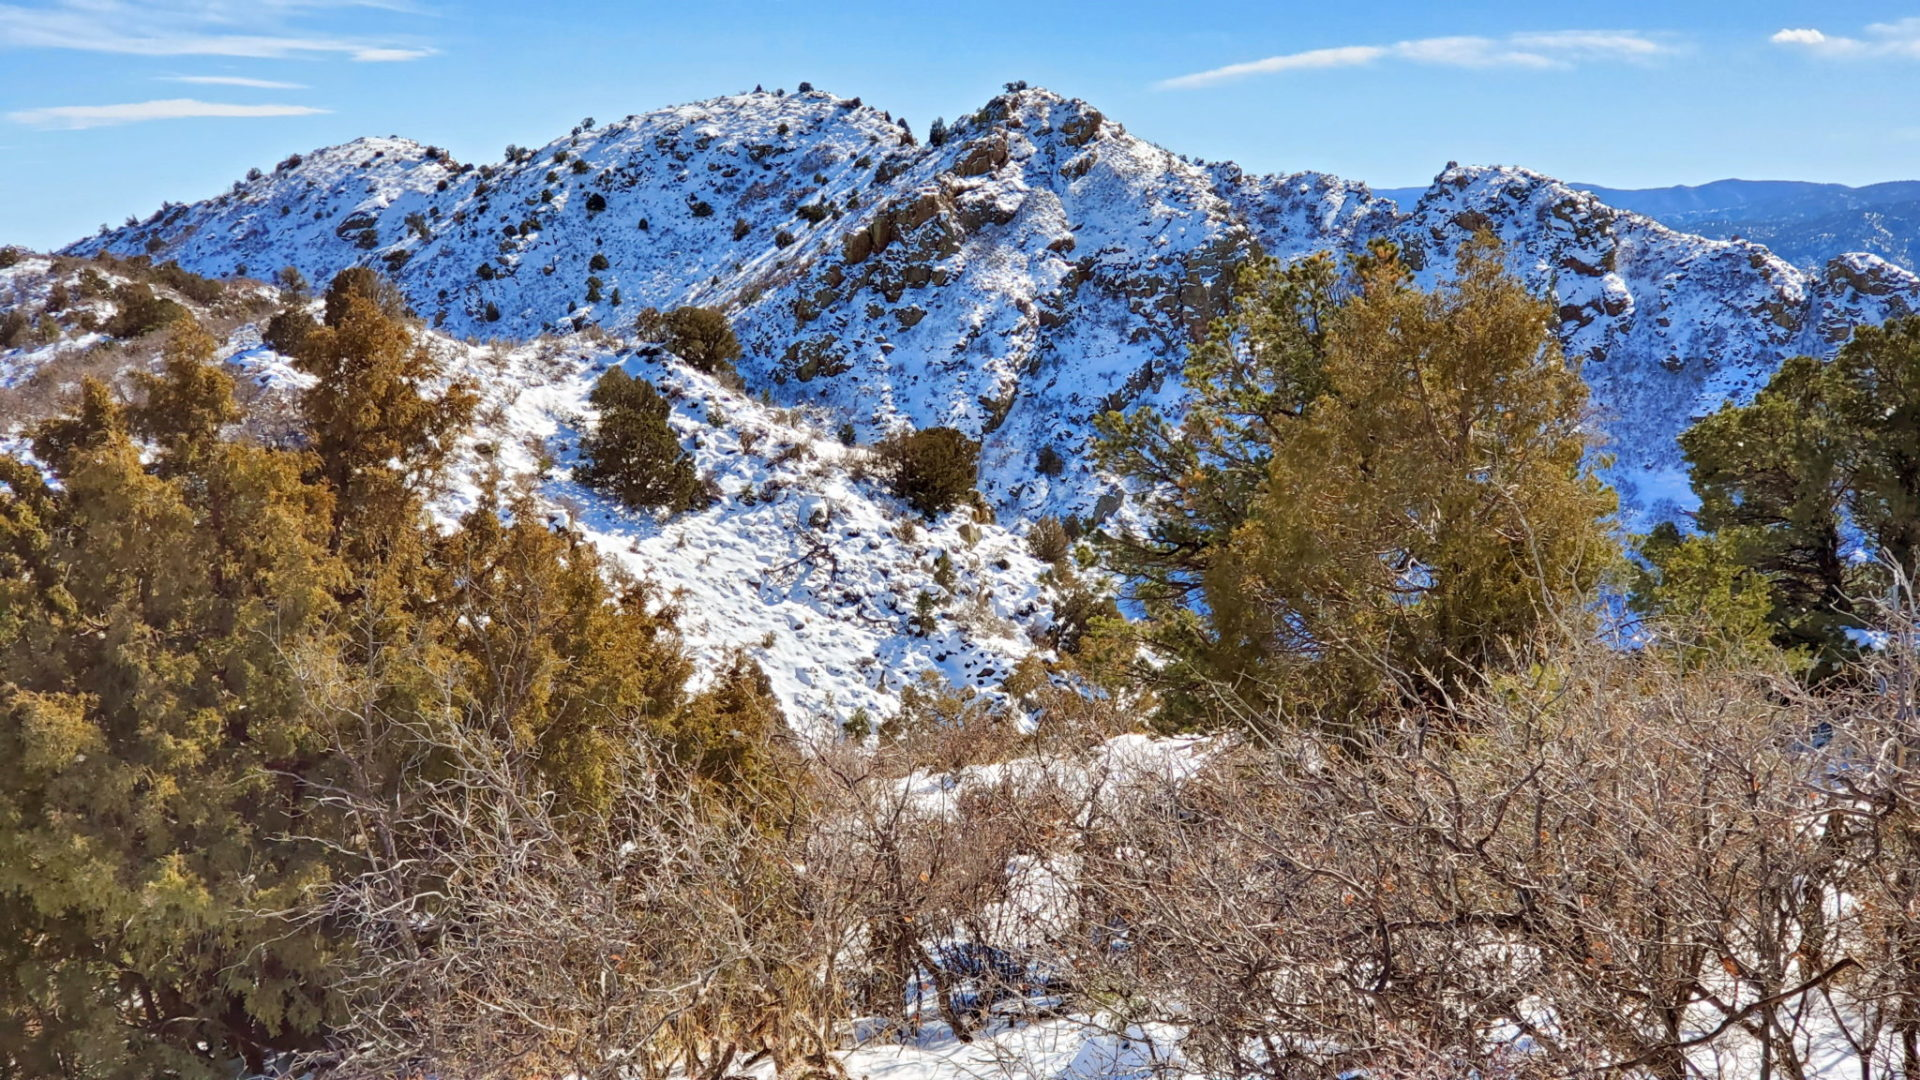 View of Fremont Peak from the trail